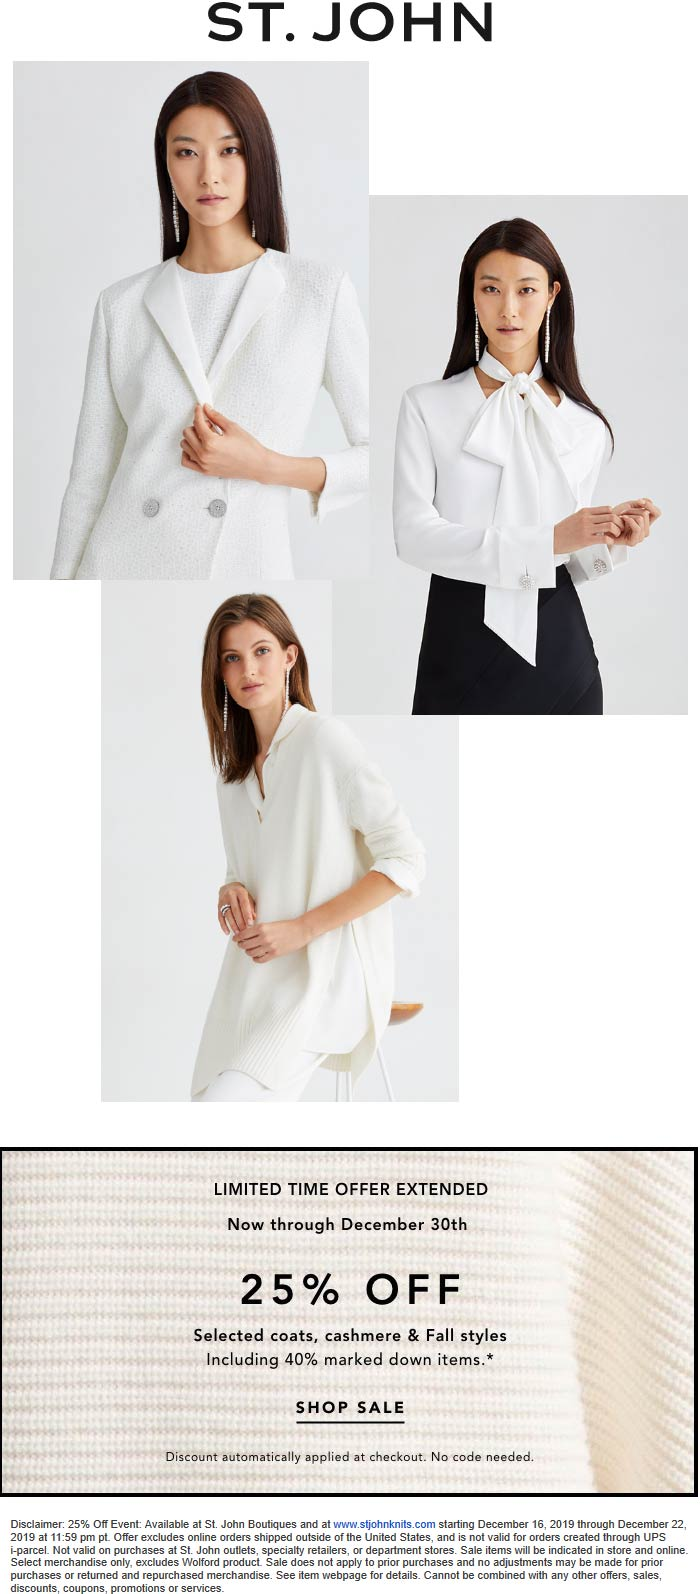 St. John Coupon January 2020 25% off fall styles & 40% off clearance today at St. John, ditto online